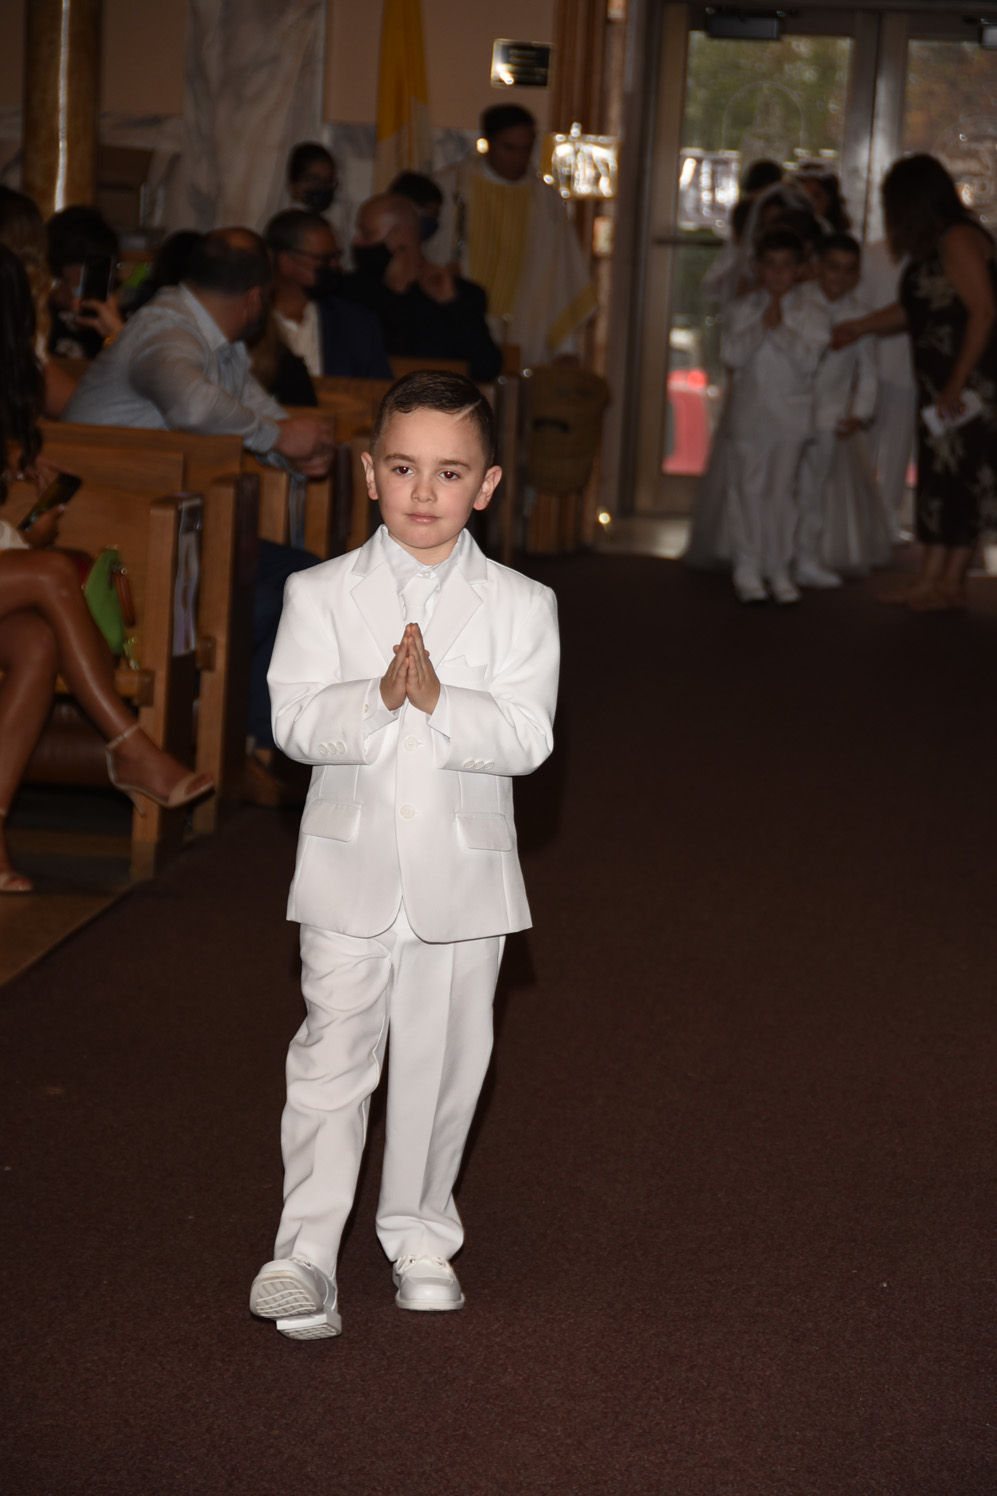 FIRST-COMMUNION-MAY-2-2021-1001001157